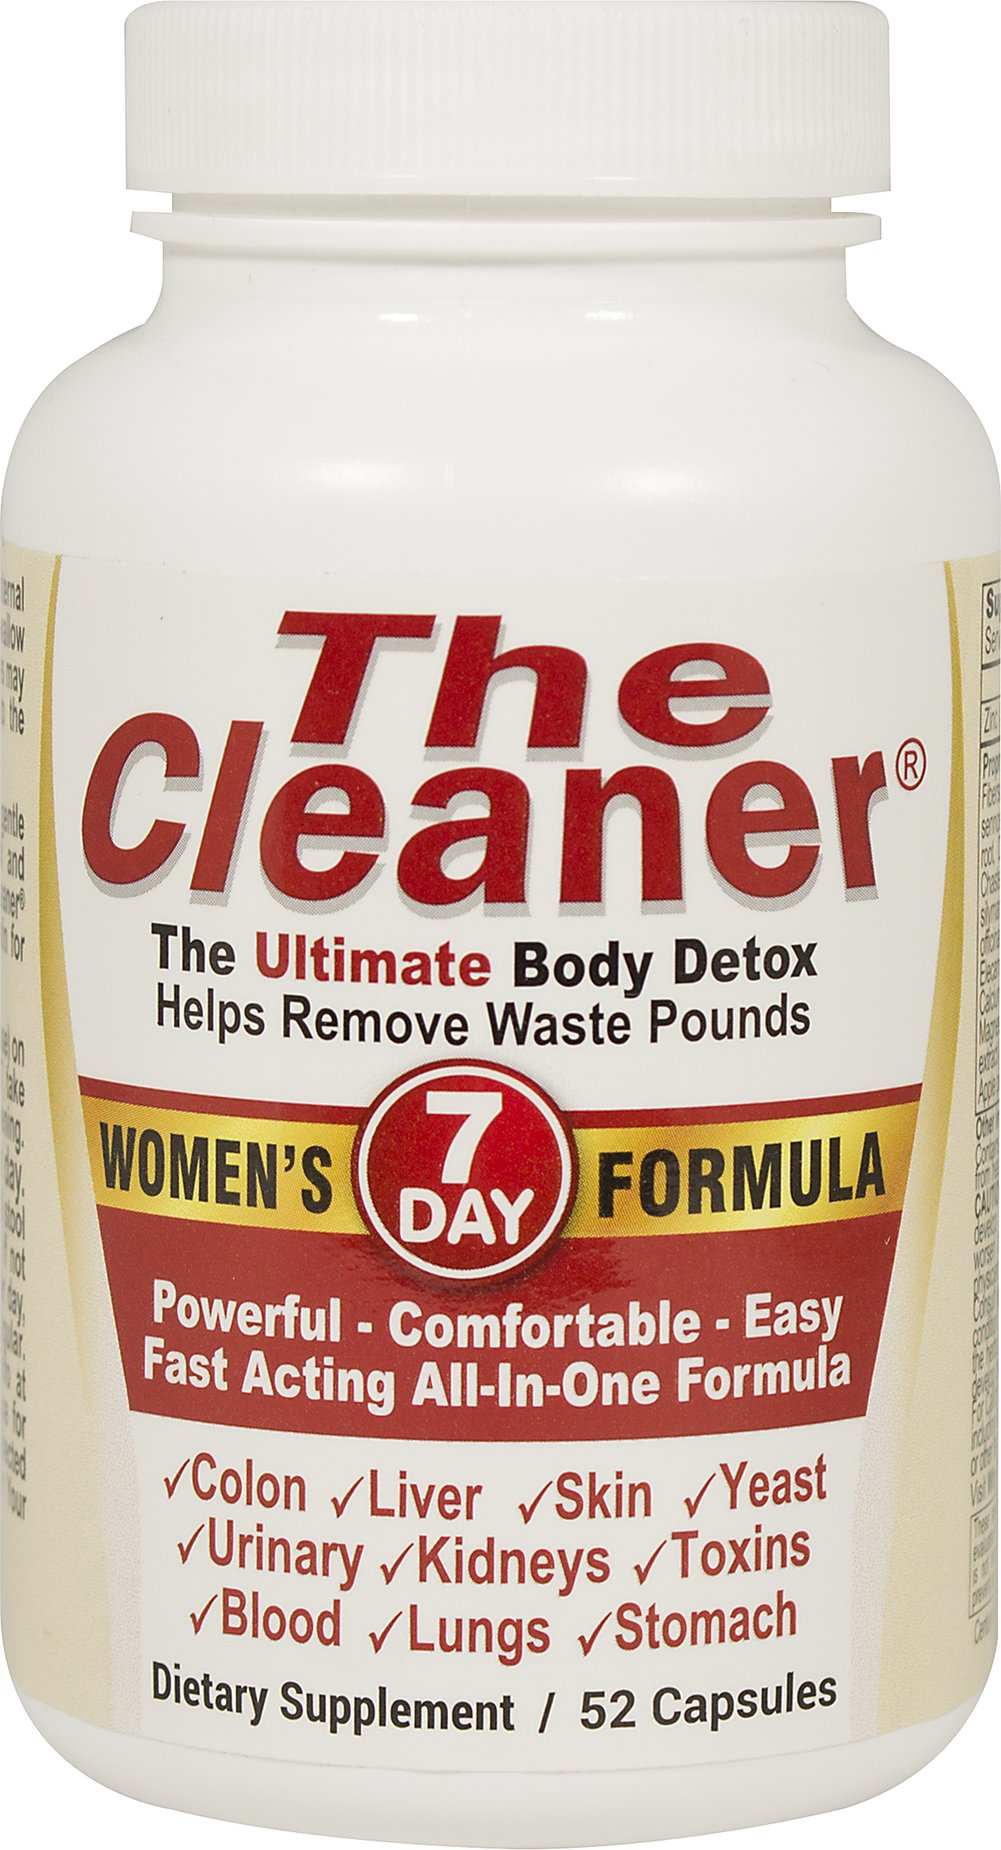 The Cleaner® 7 Day Women's Formula <p><strong>From the Manufacturer's Label: </strong></p><p>Colon, Liver, Skin, Urinary, Kidneys, Stomach, Blood, Lungs, Toxins, Yeast**</p><p>THE CLEANER® is a powerful total internal cleansing support system. It includes organ cleansing in easy to swallow capsules.</p> 52 Capsules  $12.99